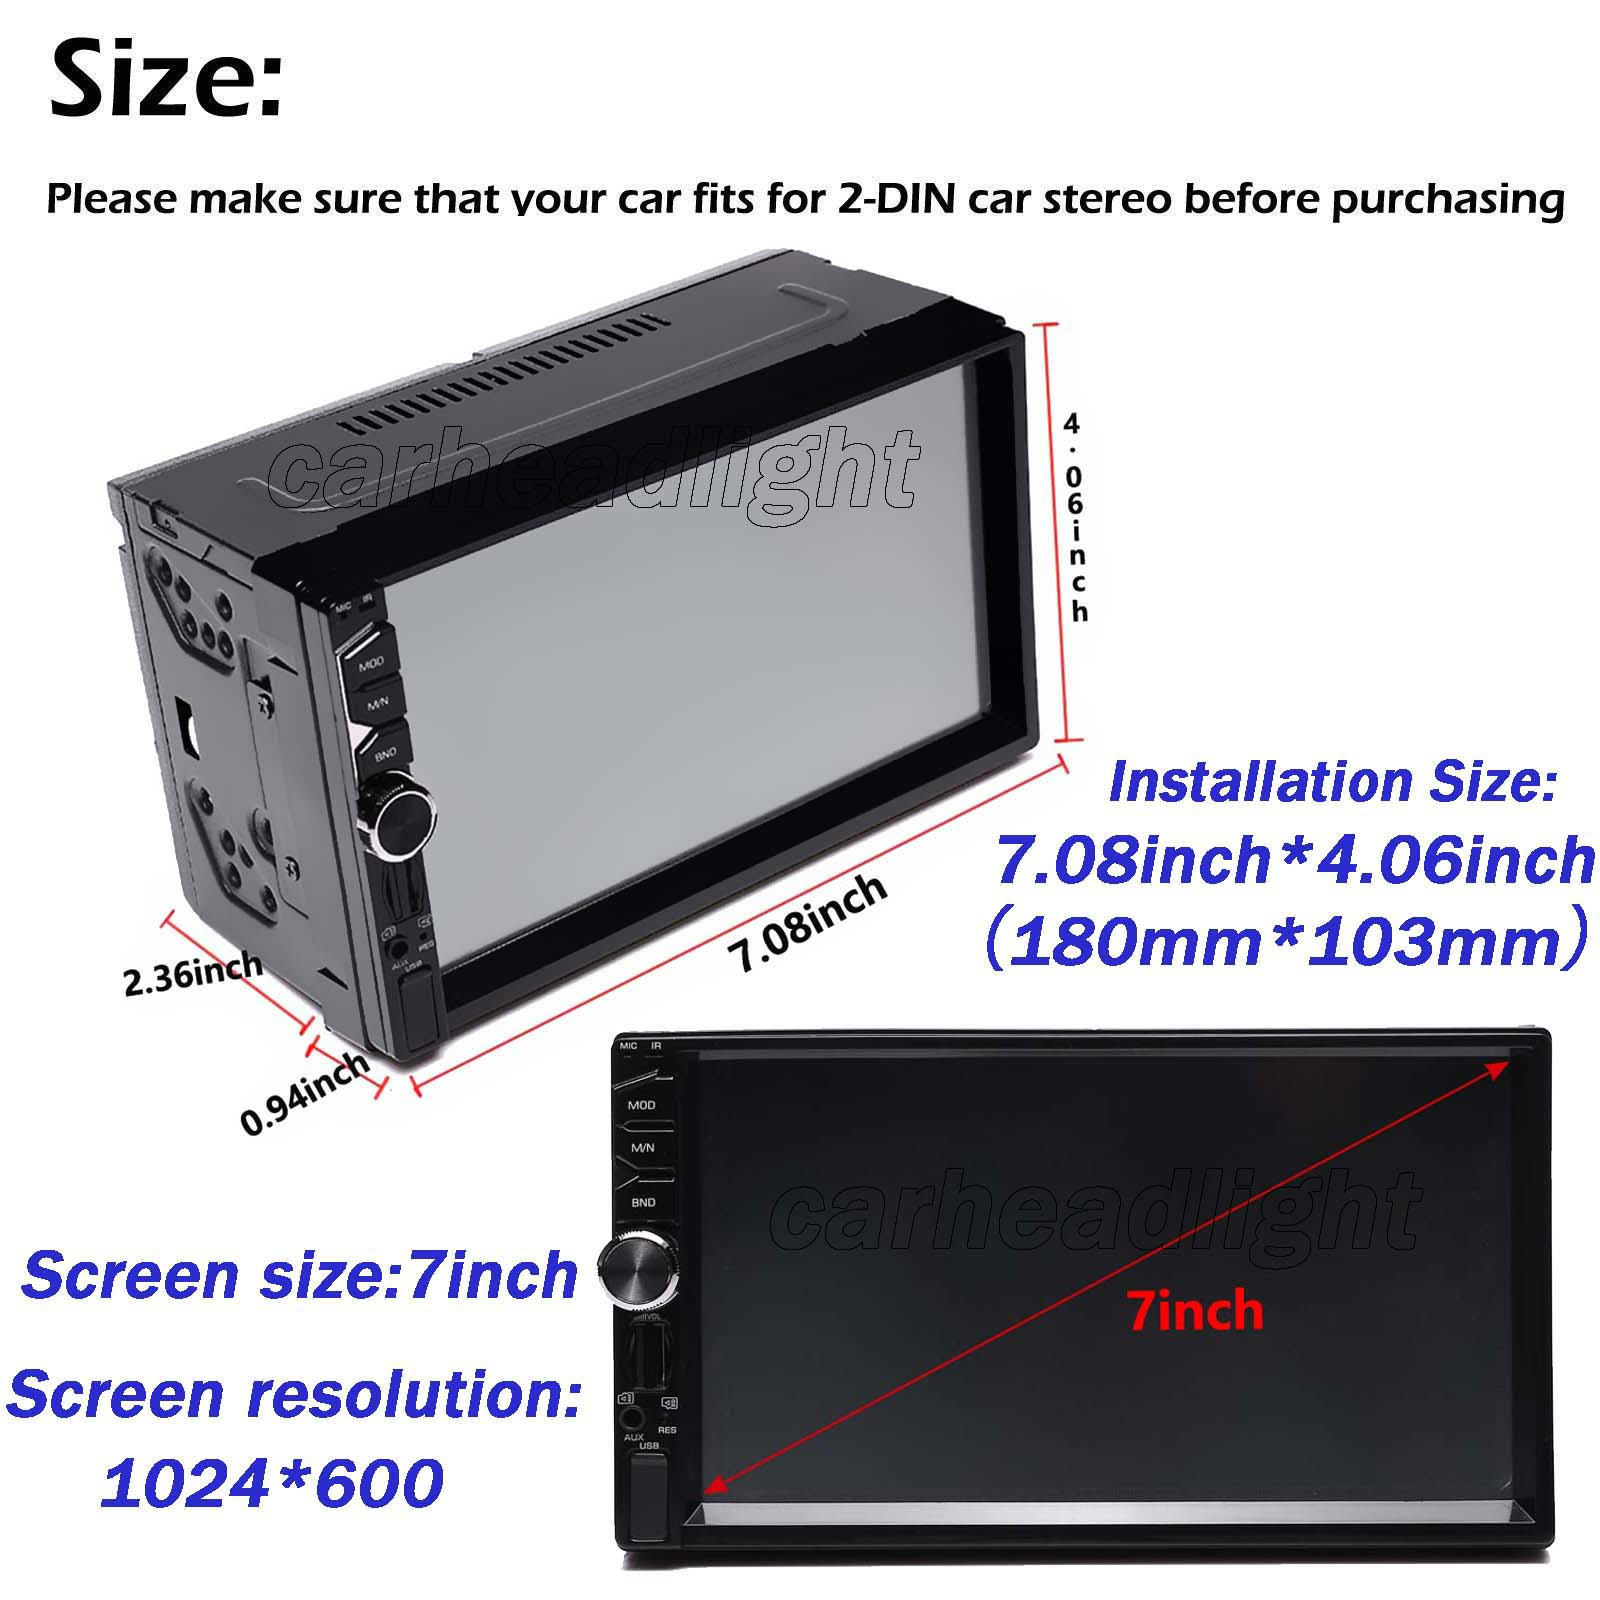 7inch 2 Din Hd Car Mp5 Player Stereo Head Unit Subwoofer Connect Eclipse Wiring 8